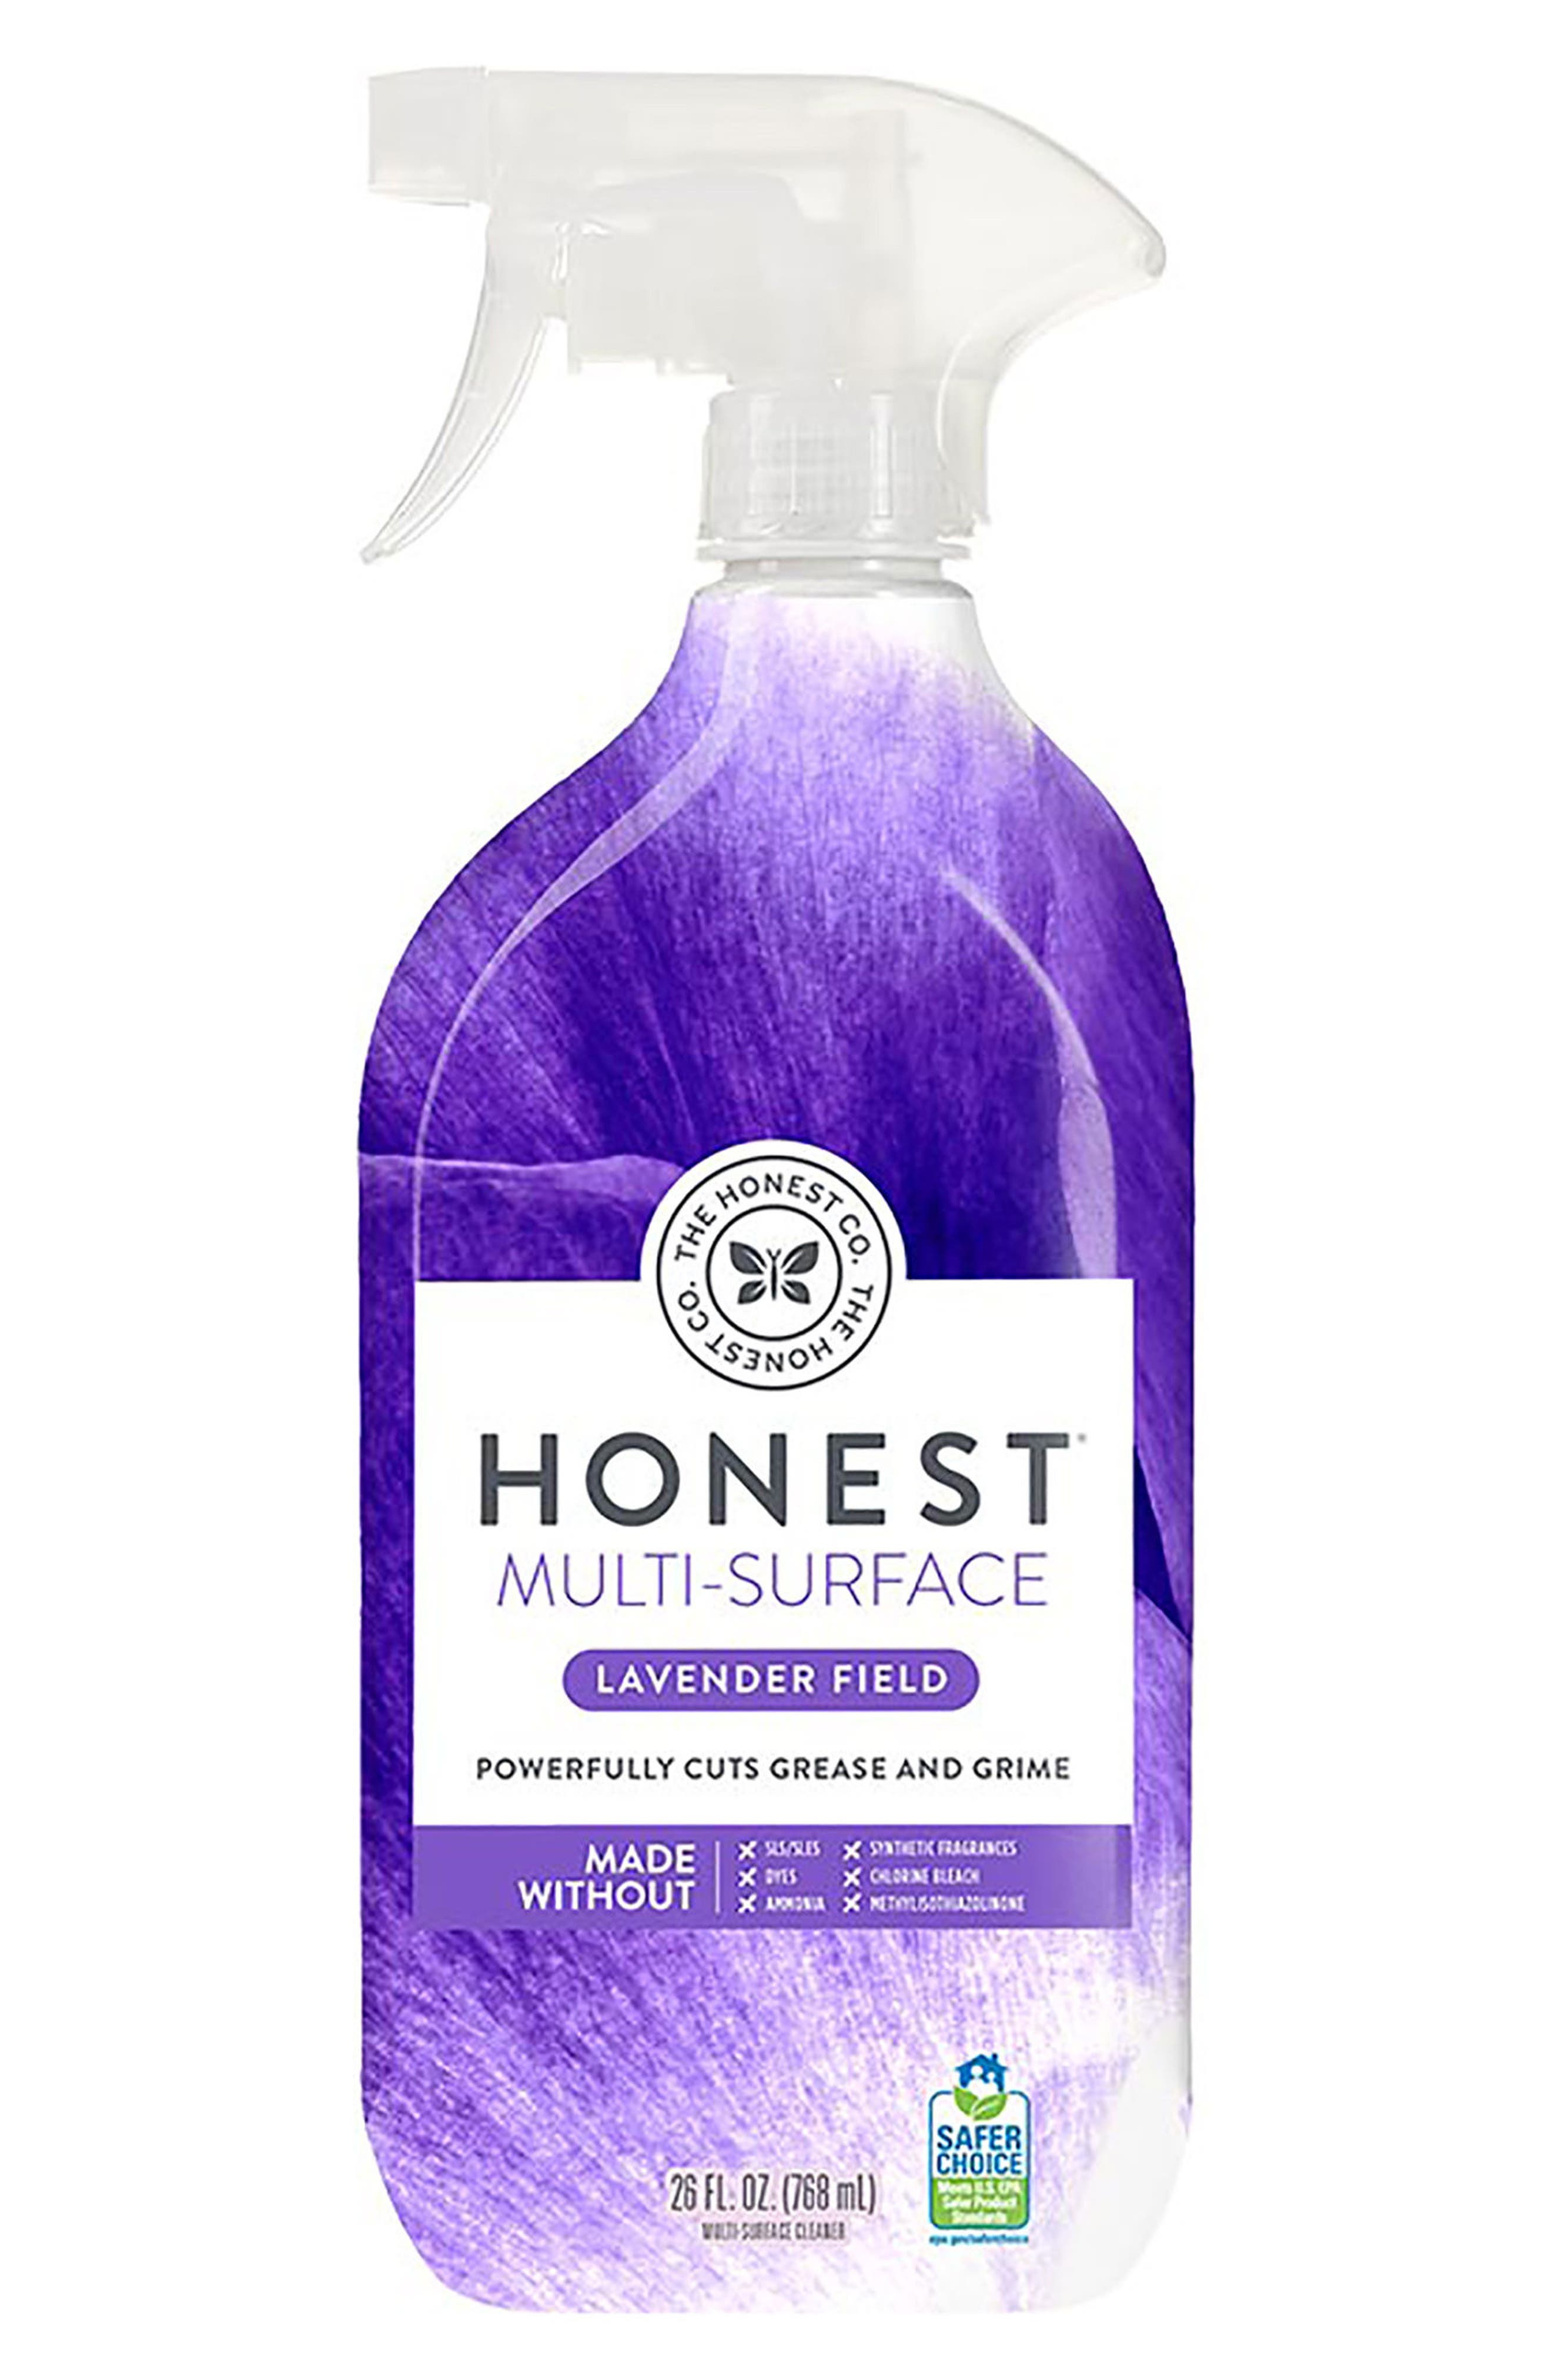 Alternate Image 1 Selected - The Honest Company Lavender Field Multi-Surface Cleaner